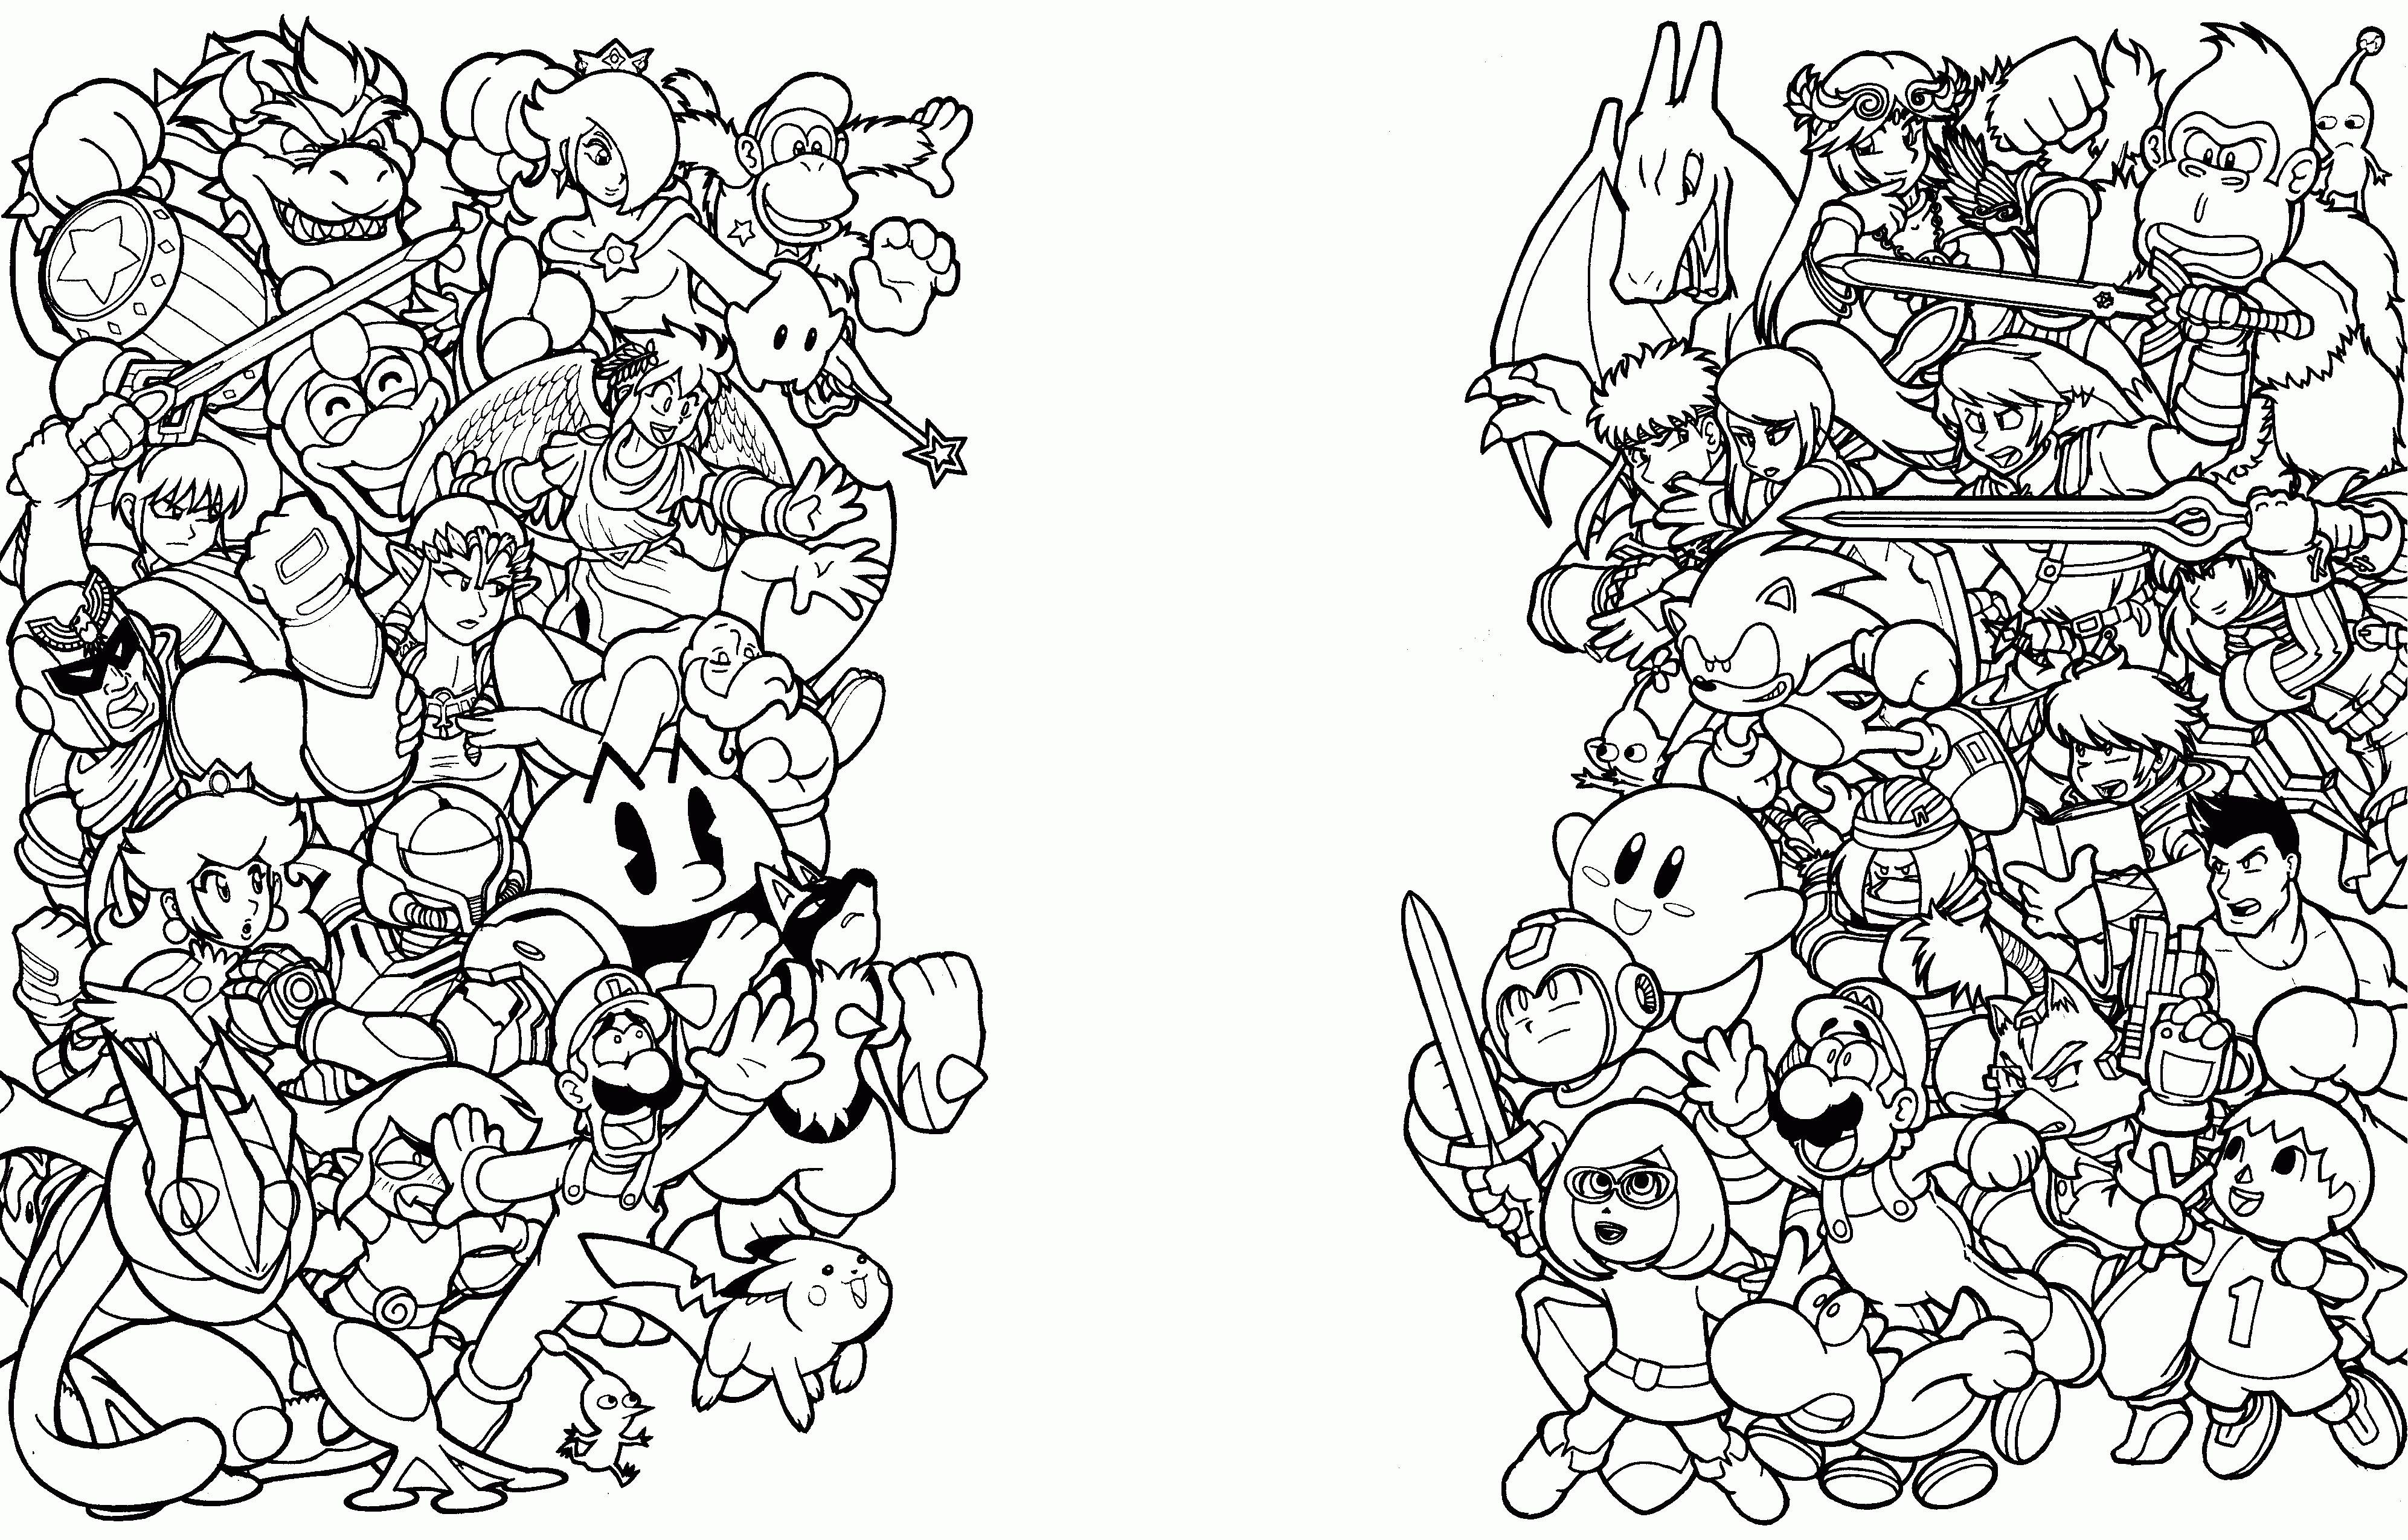 Super Smash Bros Coloring Pages  to Print 4b - Save it to your computer